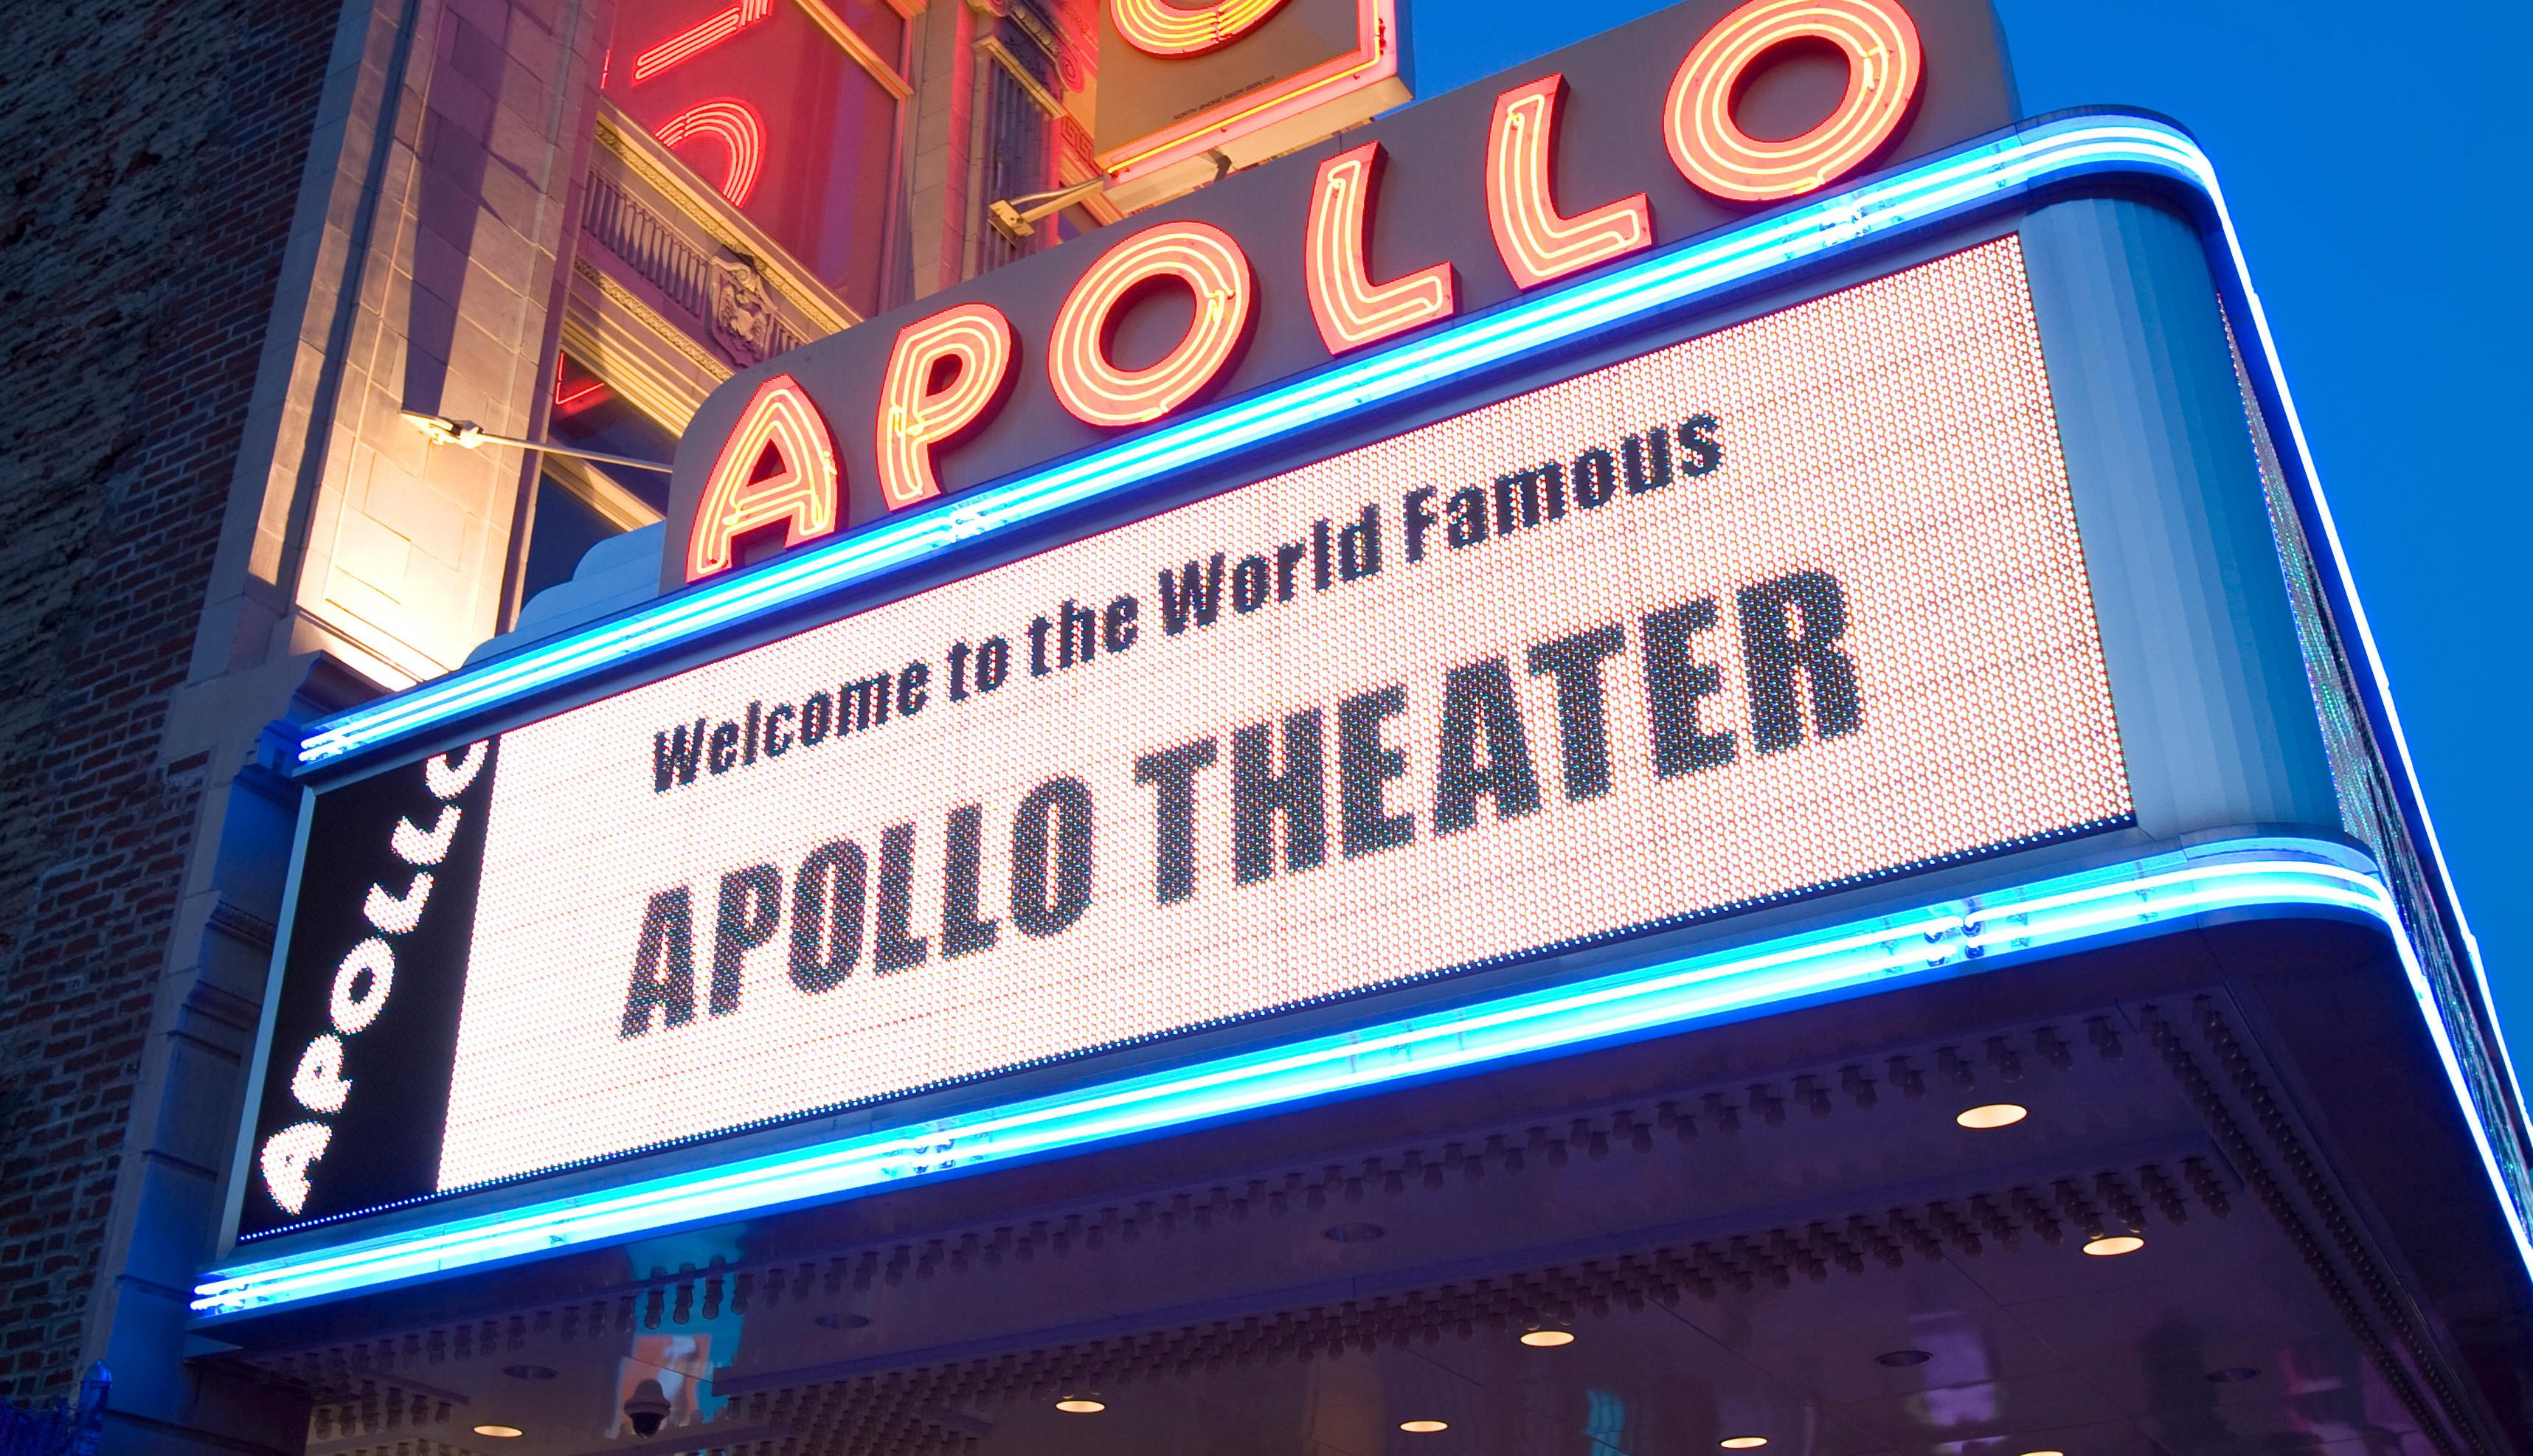 Apollo Theater, en Harlem, Manhattan, Nueva York.